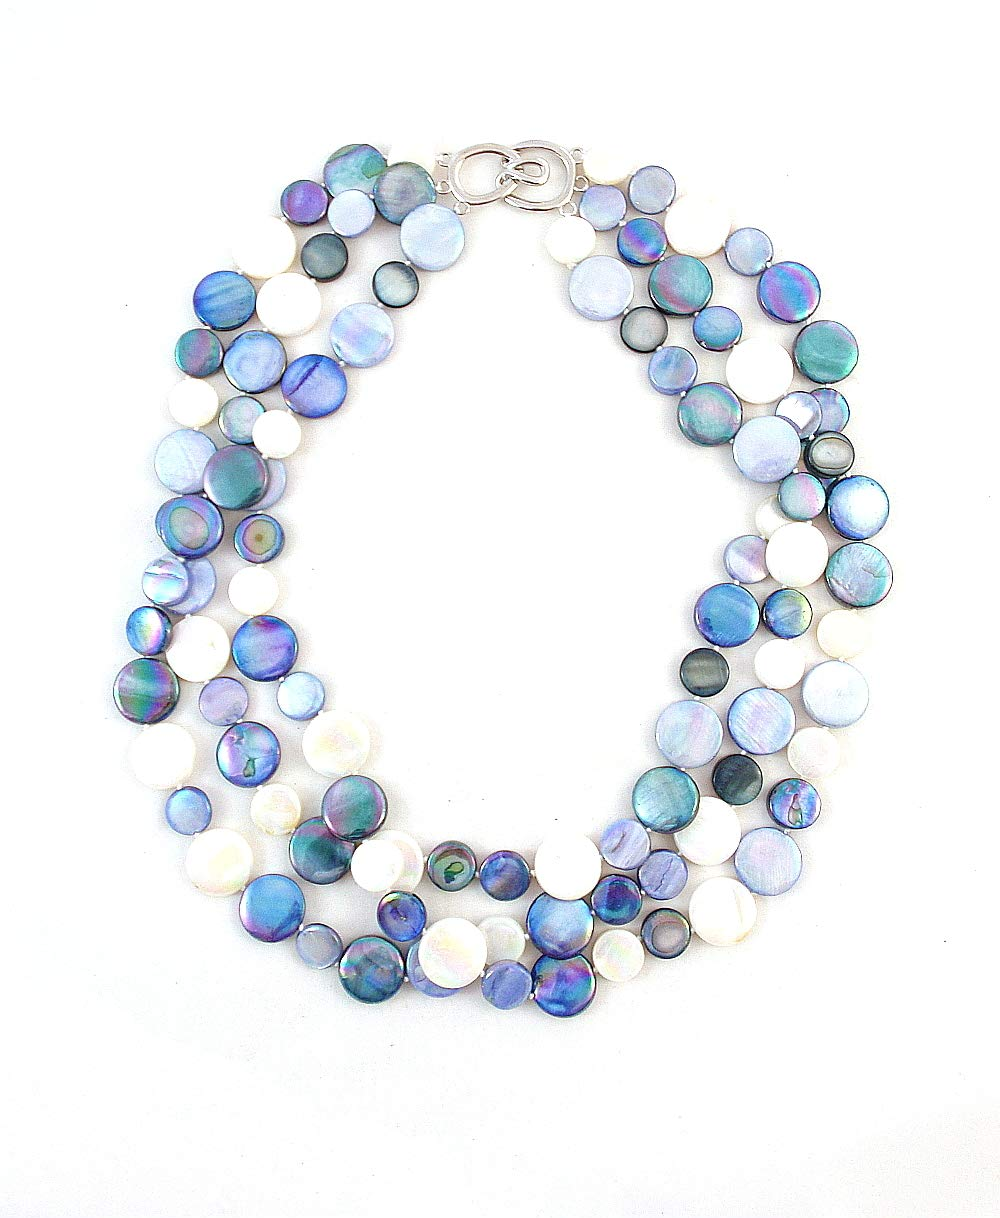 The Island Pearl Blue Mother of Pearl Necklace by The Island Pearl